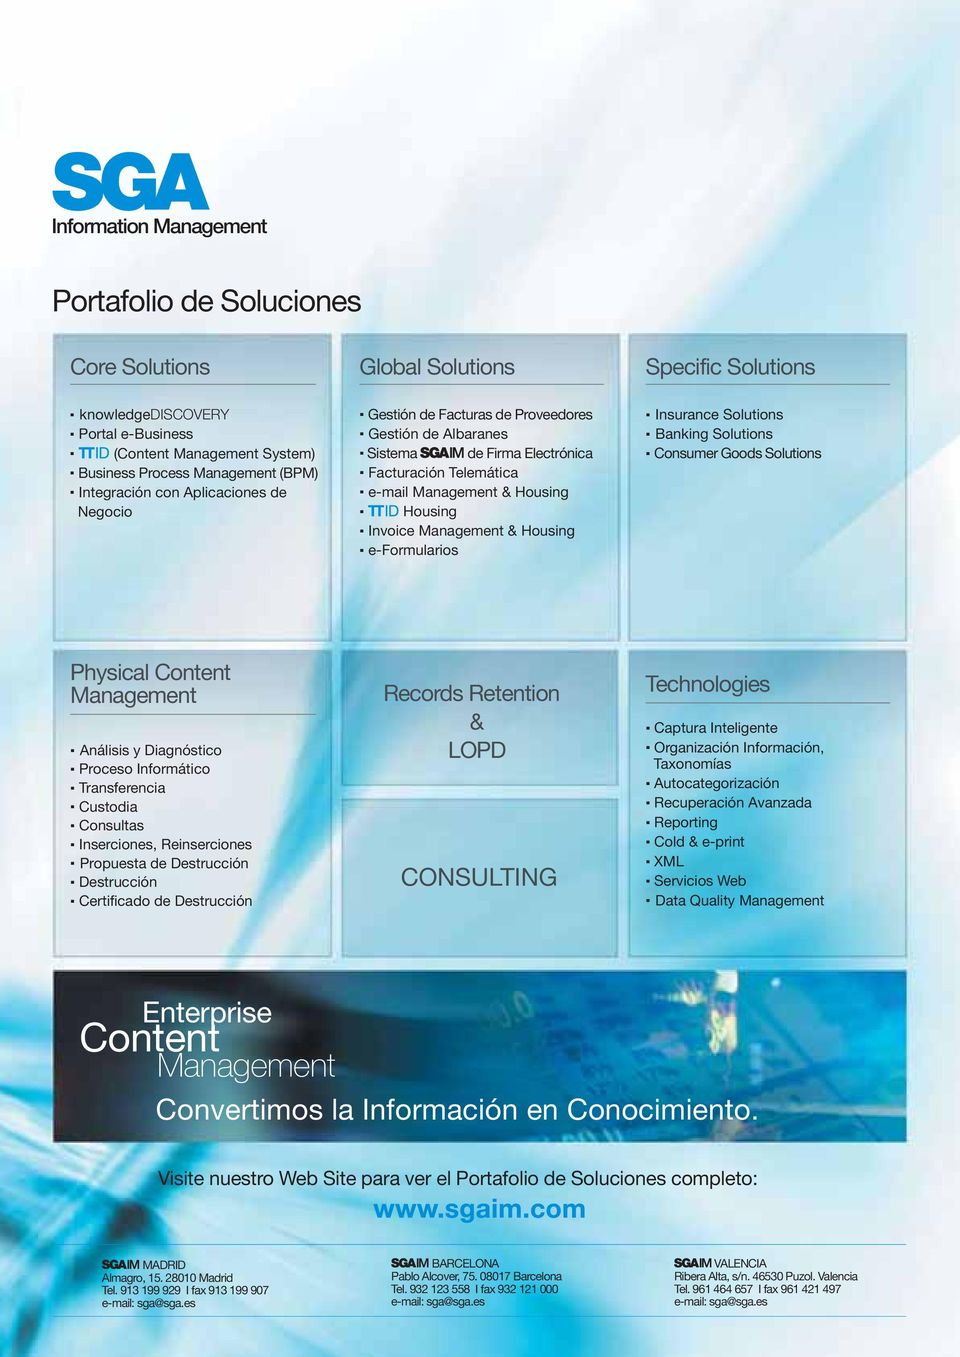 e-mail Management & Housing. Housing. Invoice Management & Housing. e-formularios. Insurance Solutions. Banking Solutions. Consumer Goods Solutions Physical Content Management. Análisis y Diagnóstico.